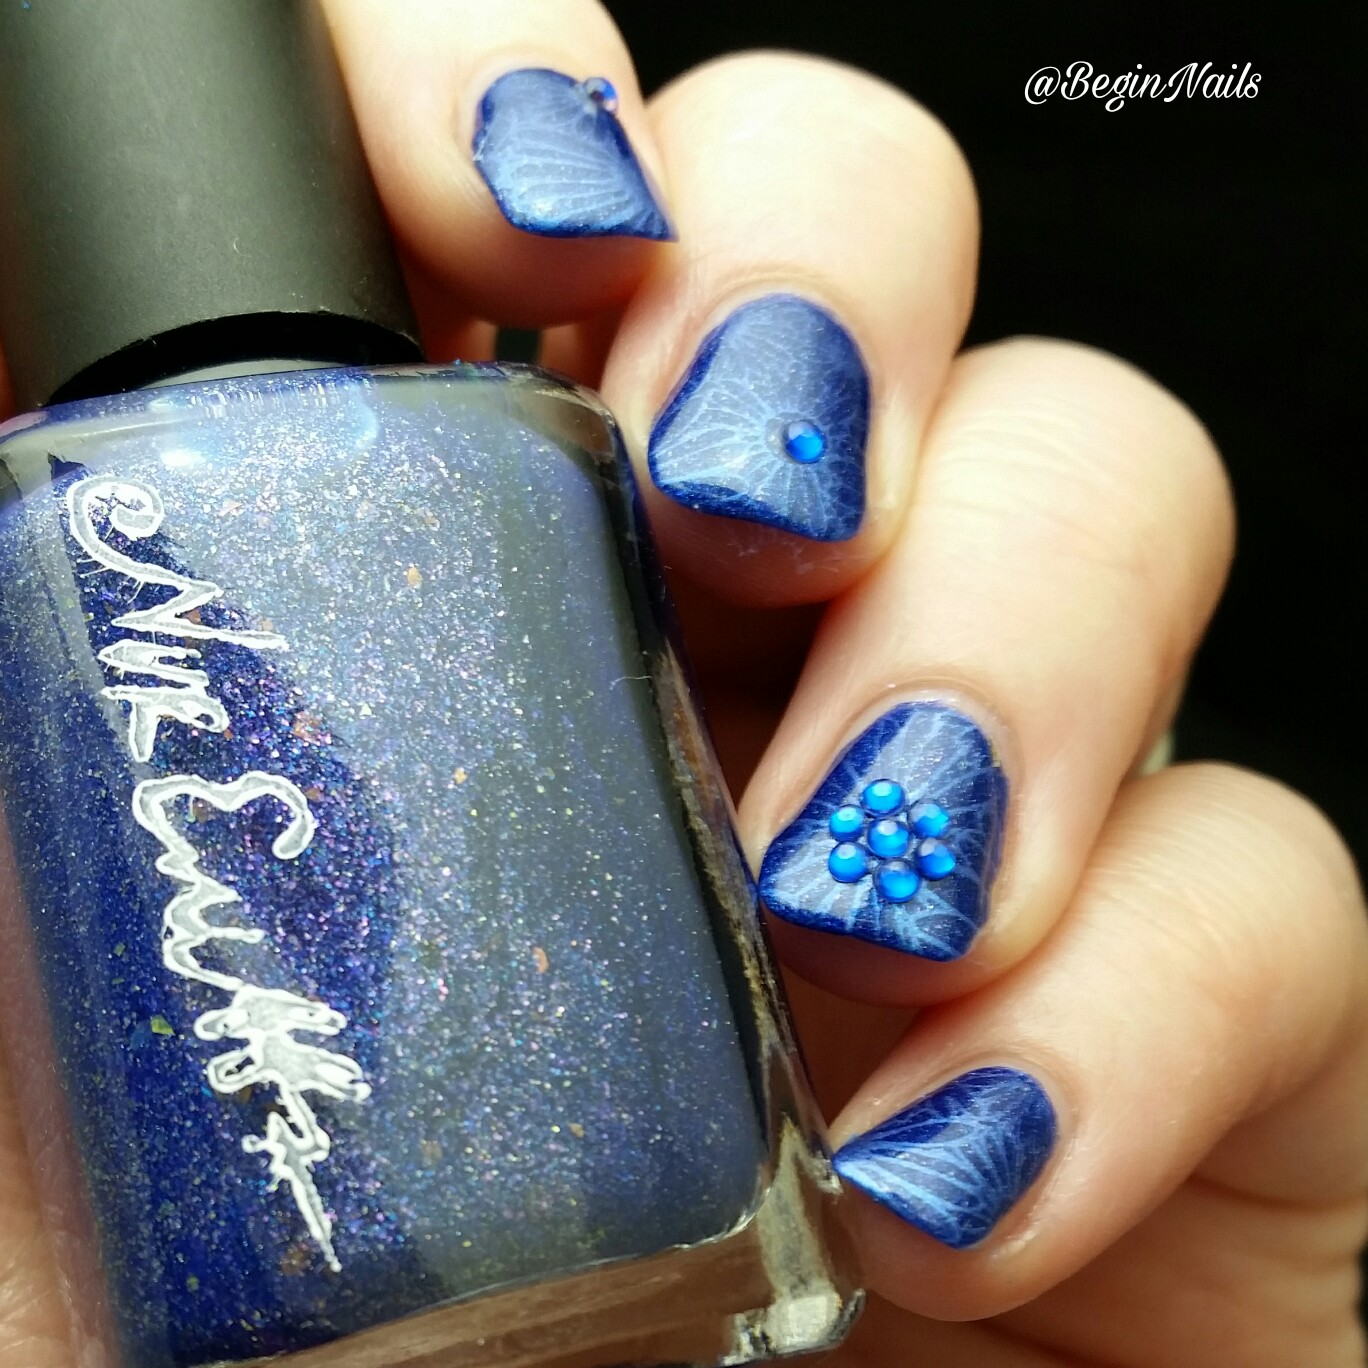 Lets begin nails 26 great nail art ideas challenge blue floral speaking of nail art have you had a mani you just struggled with the mani for this blog was my nemesis i could not figure out a blue floral mani for prinsesfo Choice Image